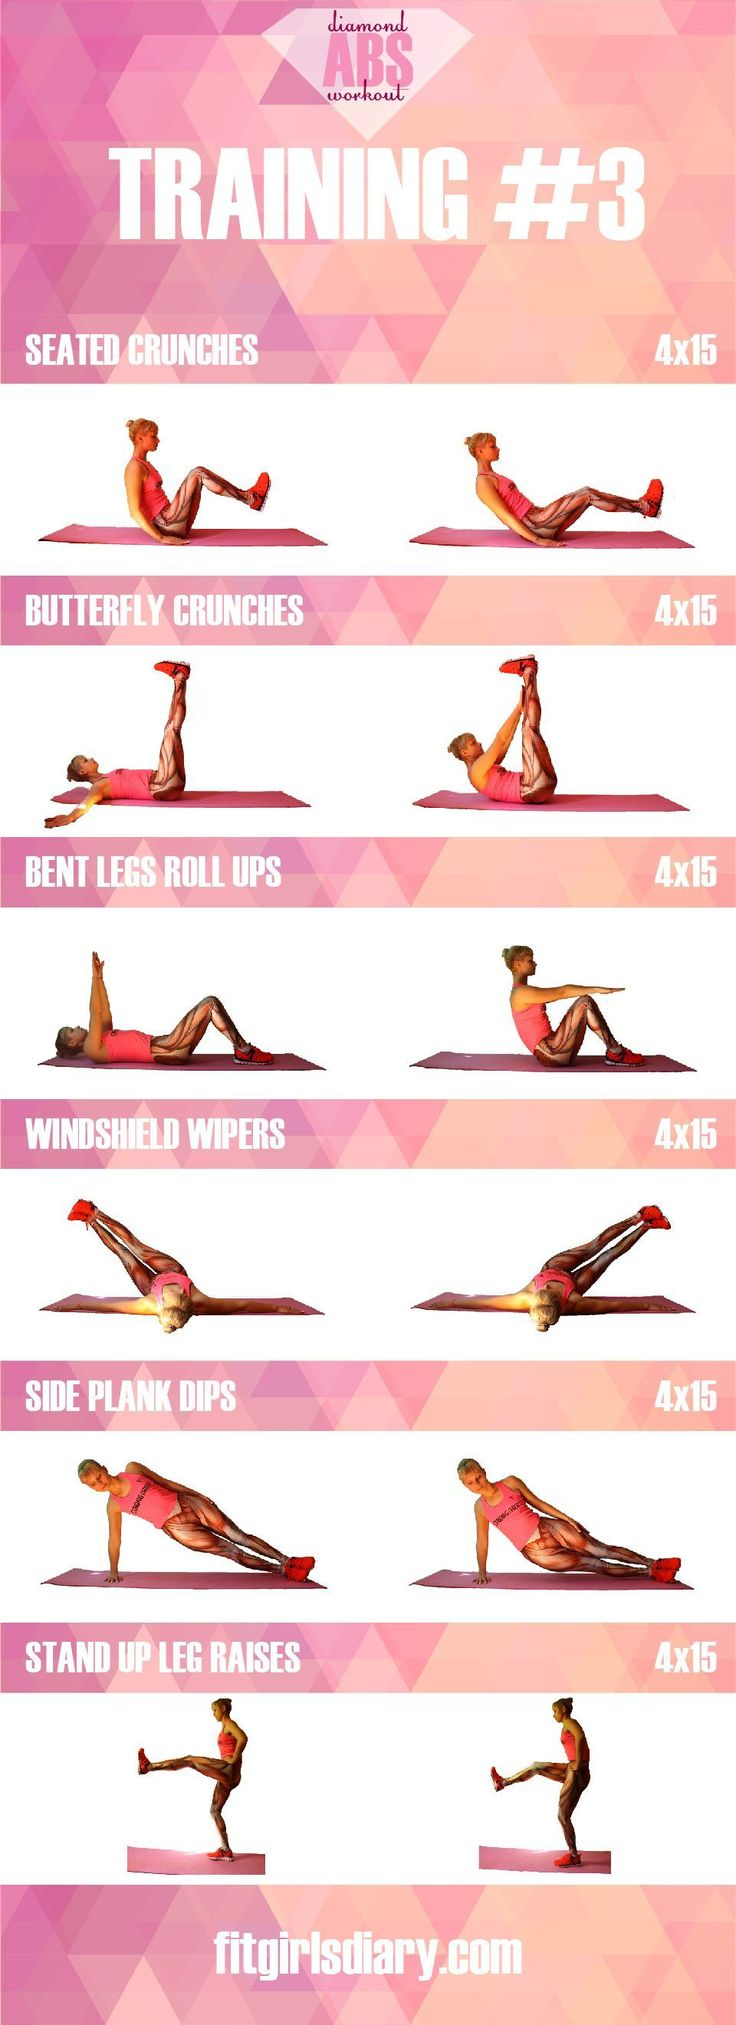 diamond abs workout collection of the best ab exercises for women